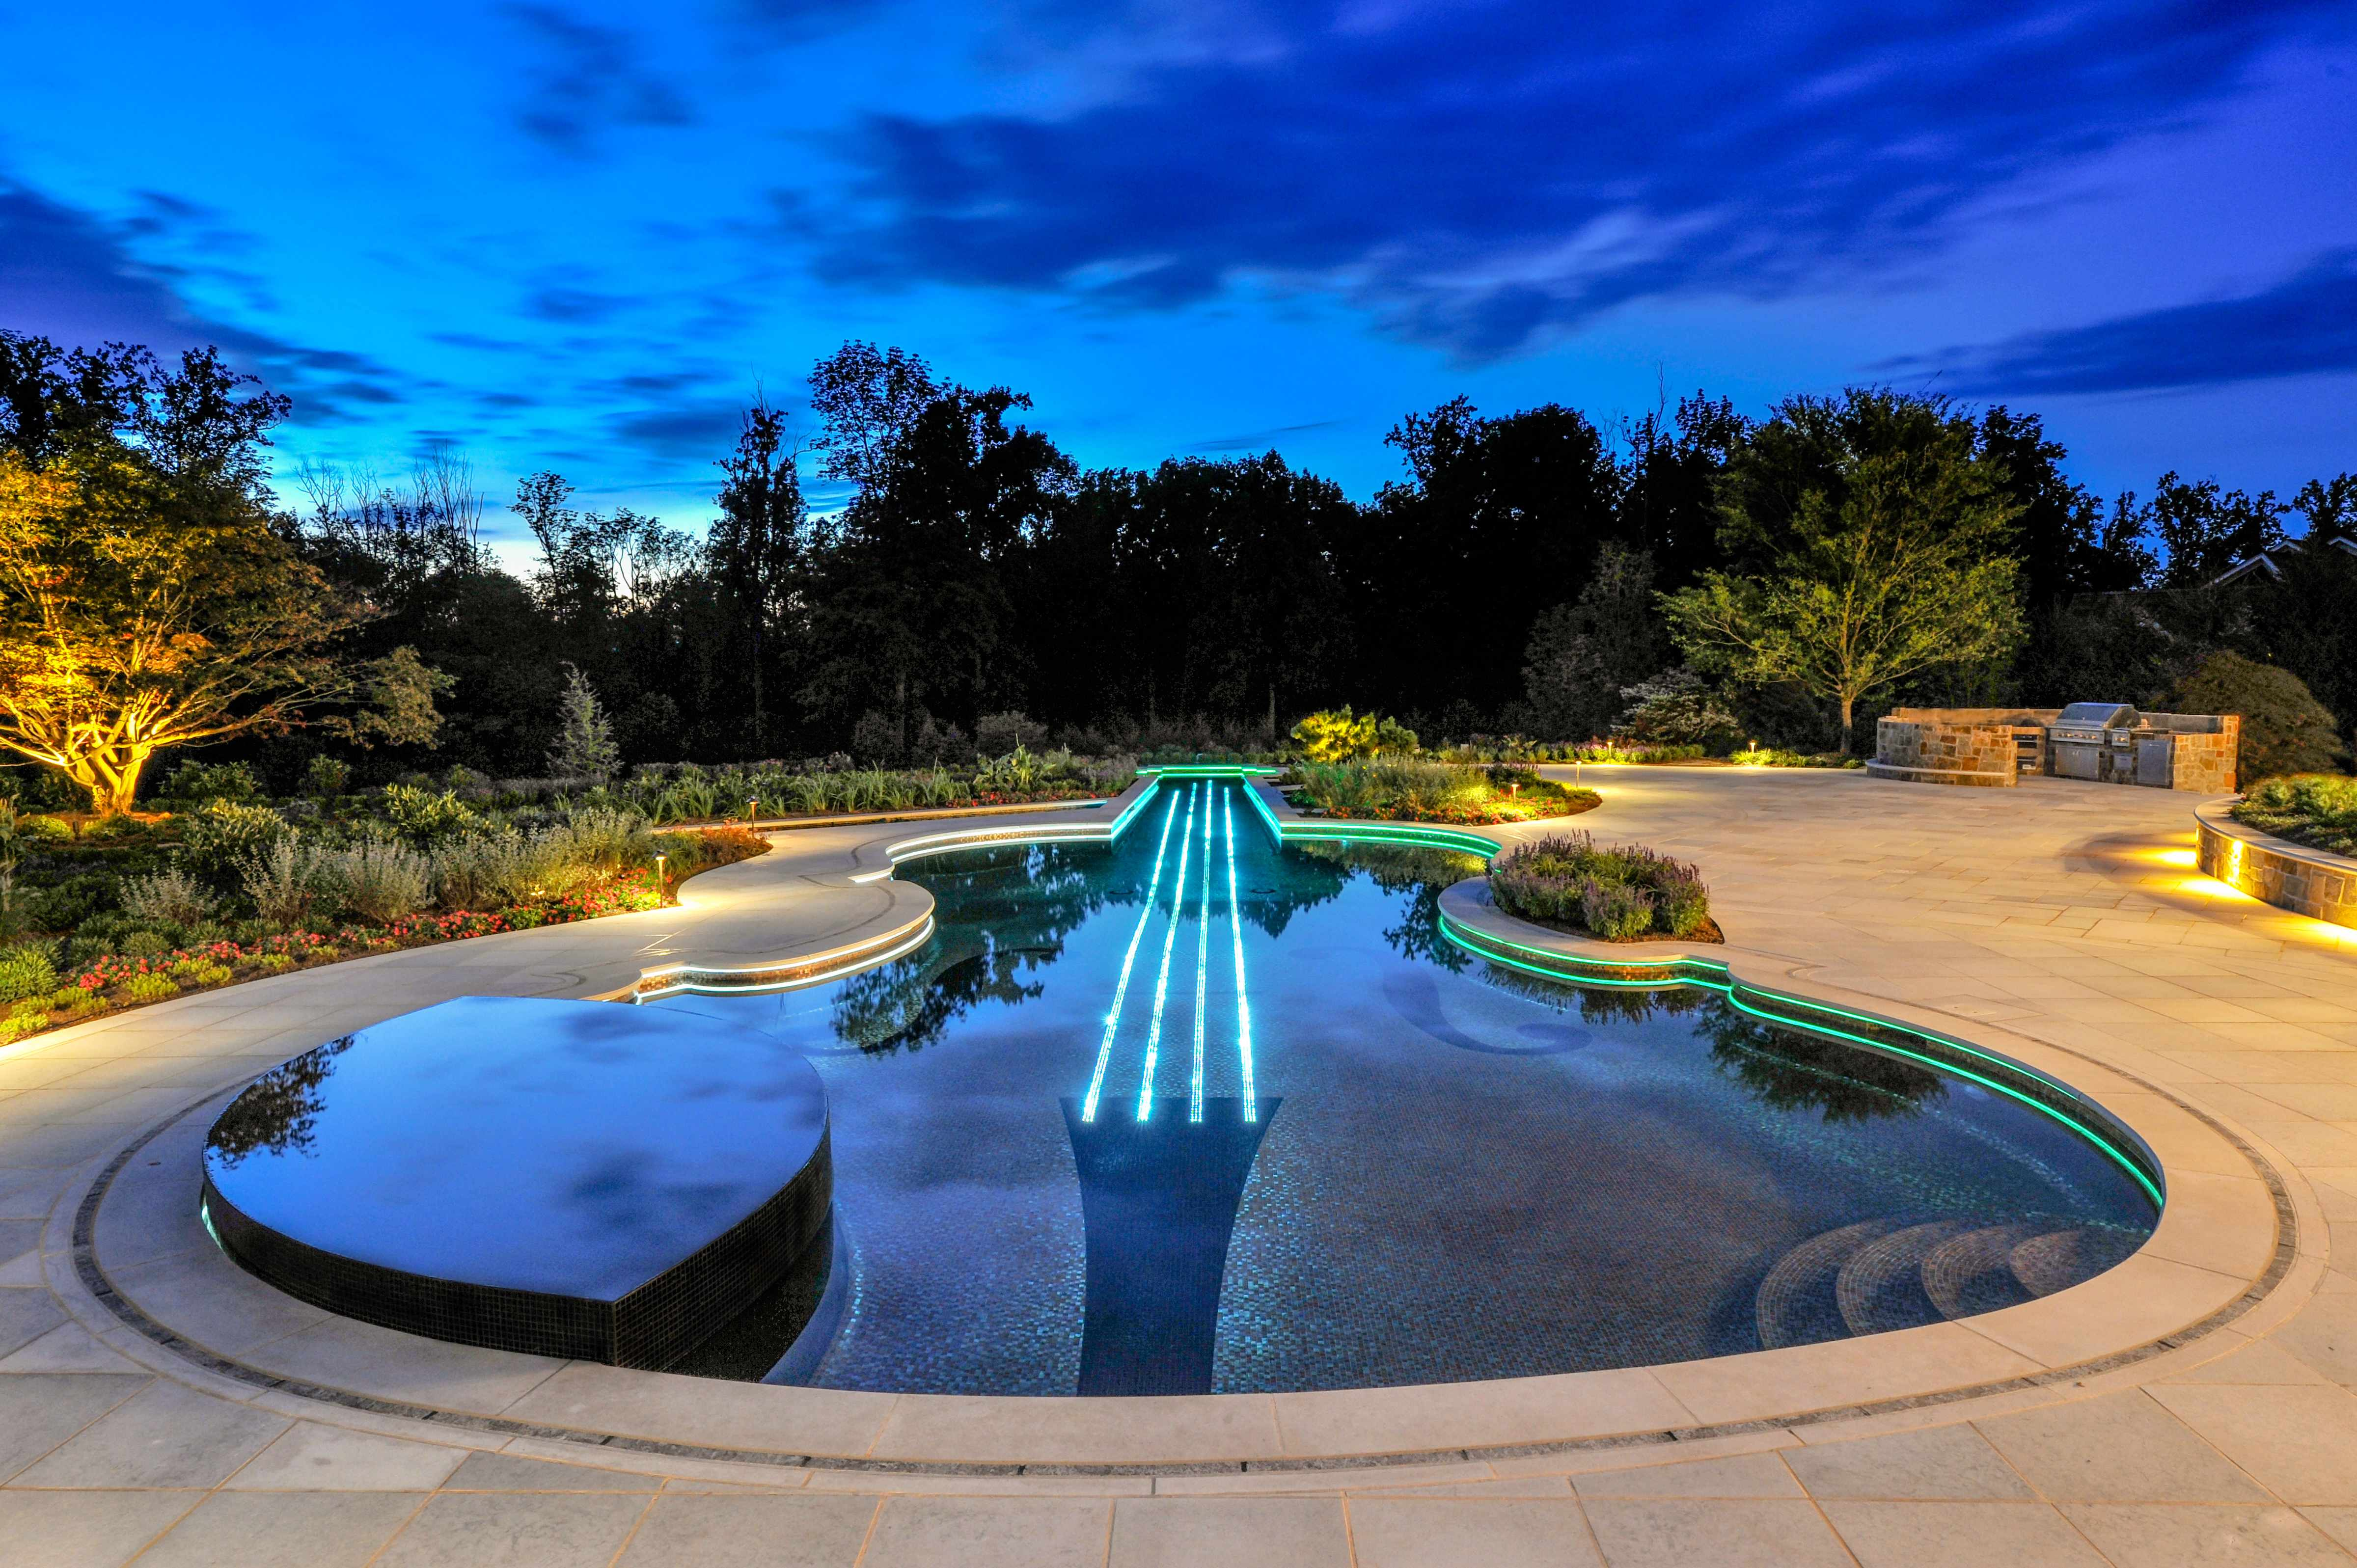 Music Themed Luxury Swimming Pool Design Wins Gold Bergen County NJ